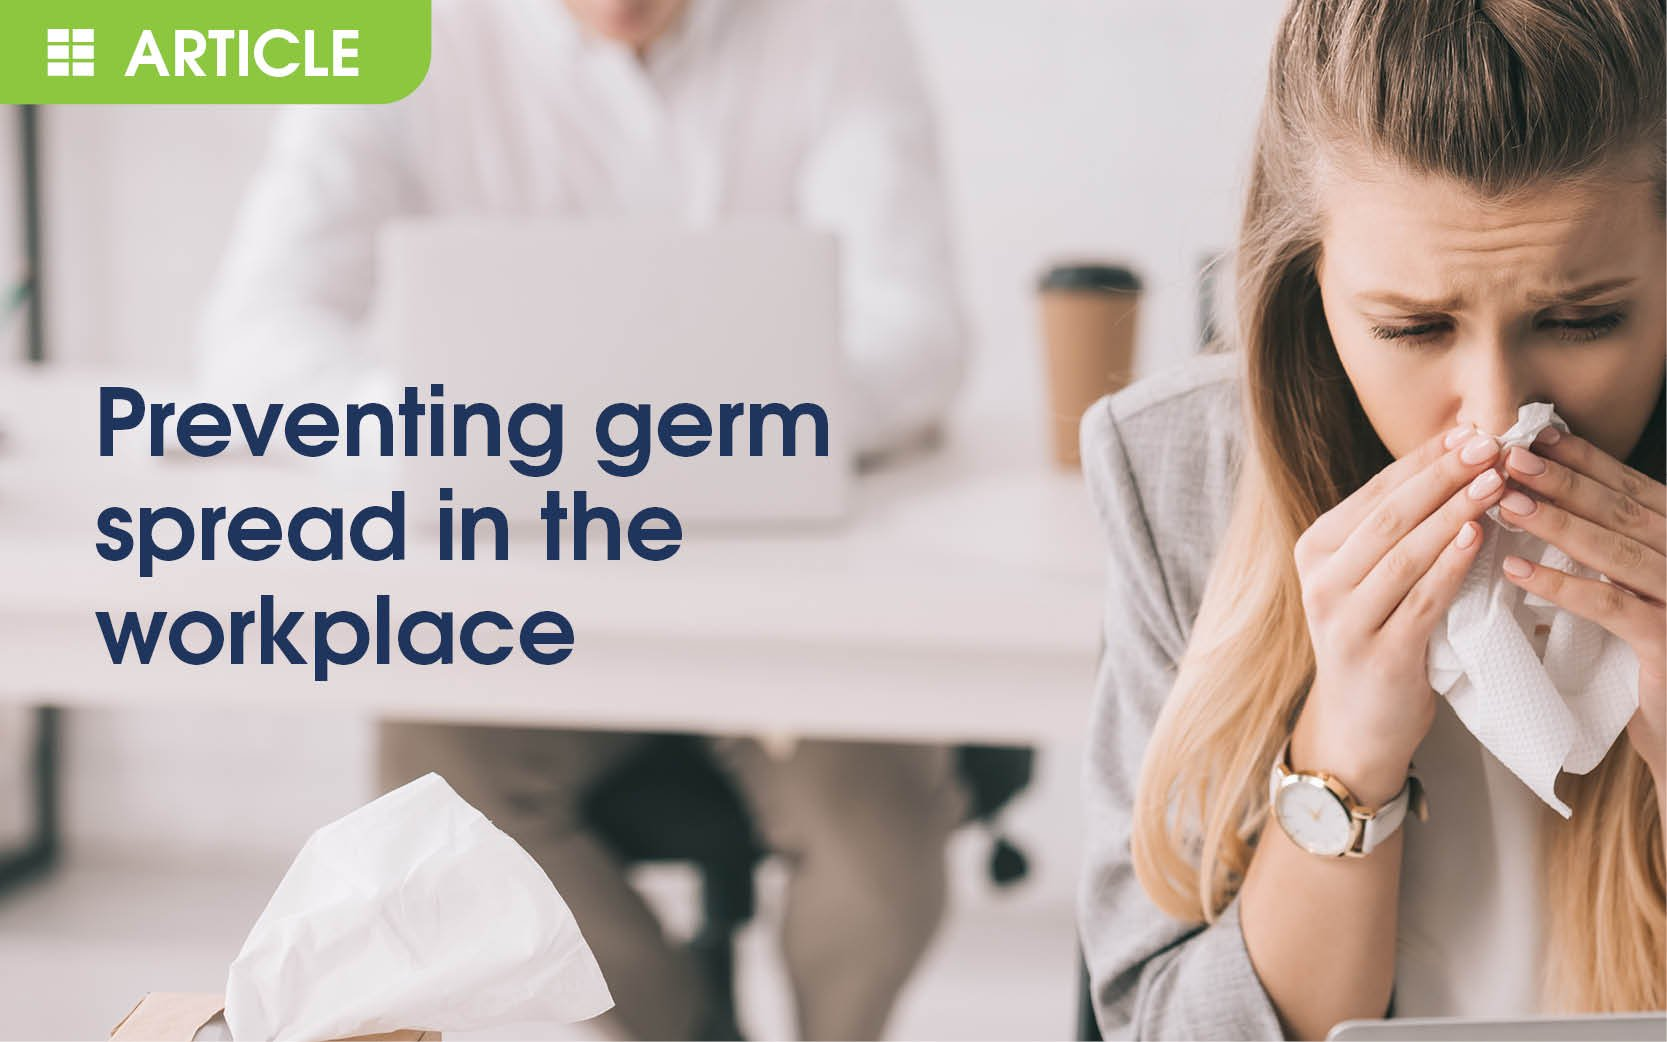 Preventing Germ Spread in the Workplace